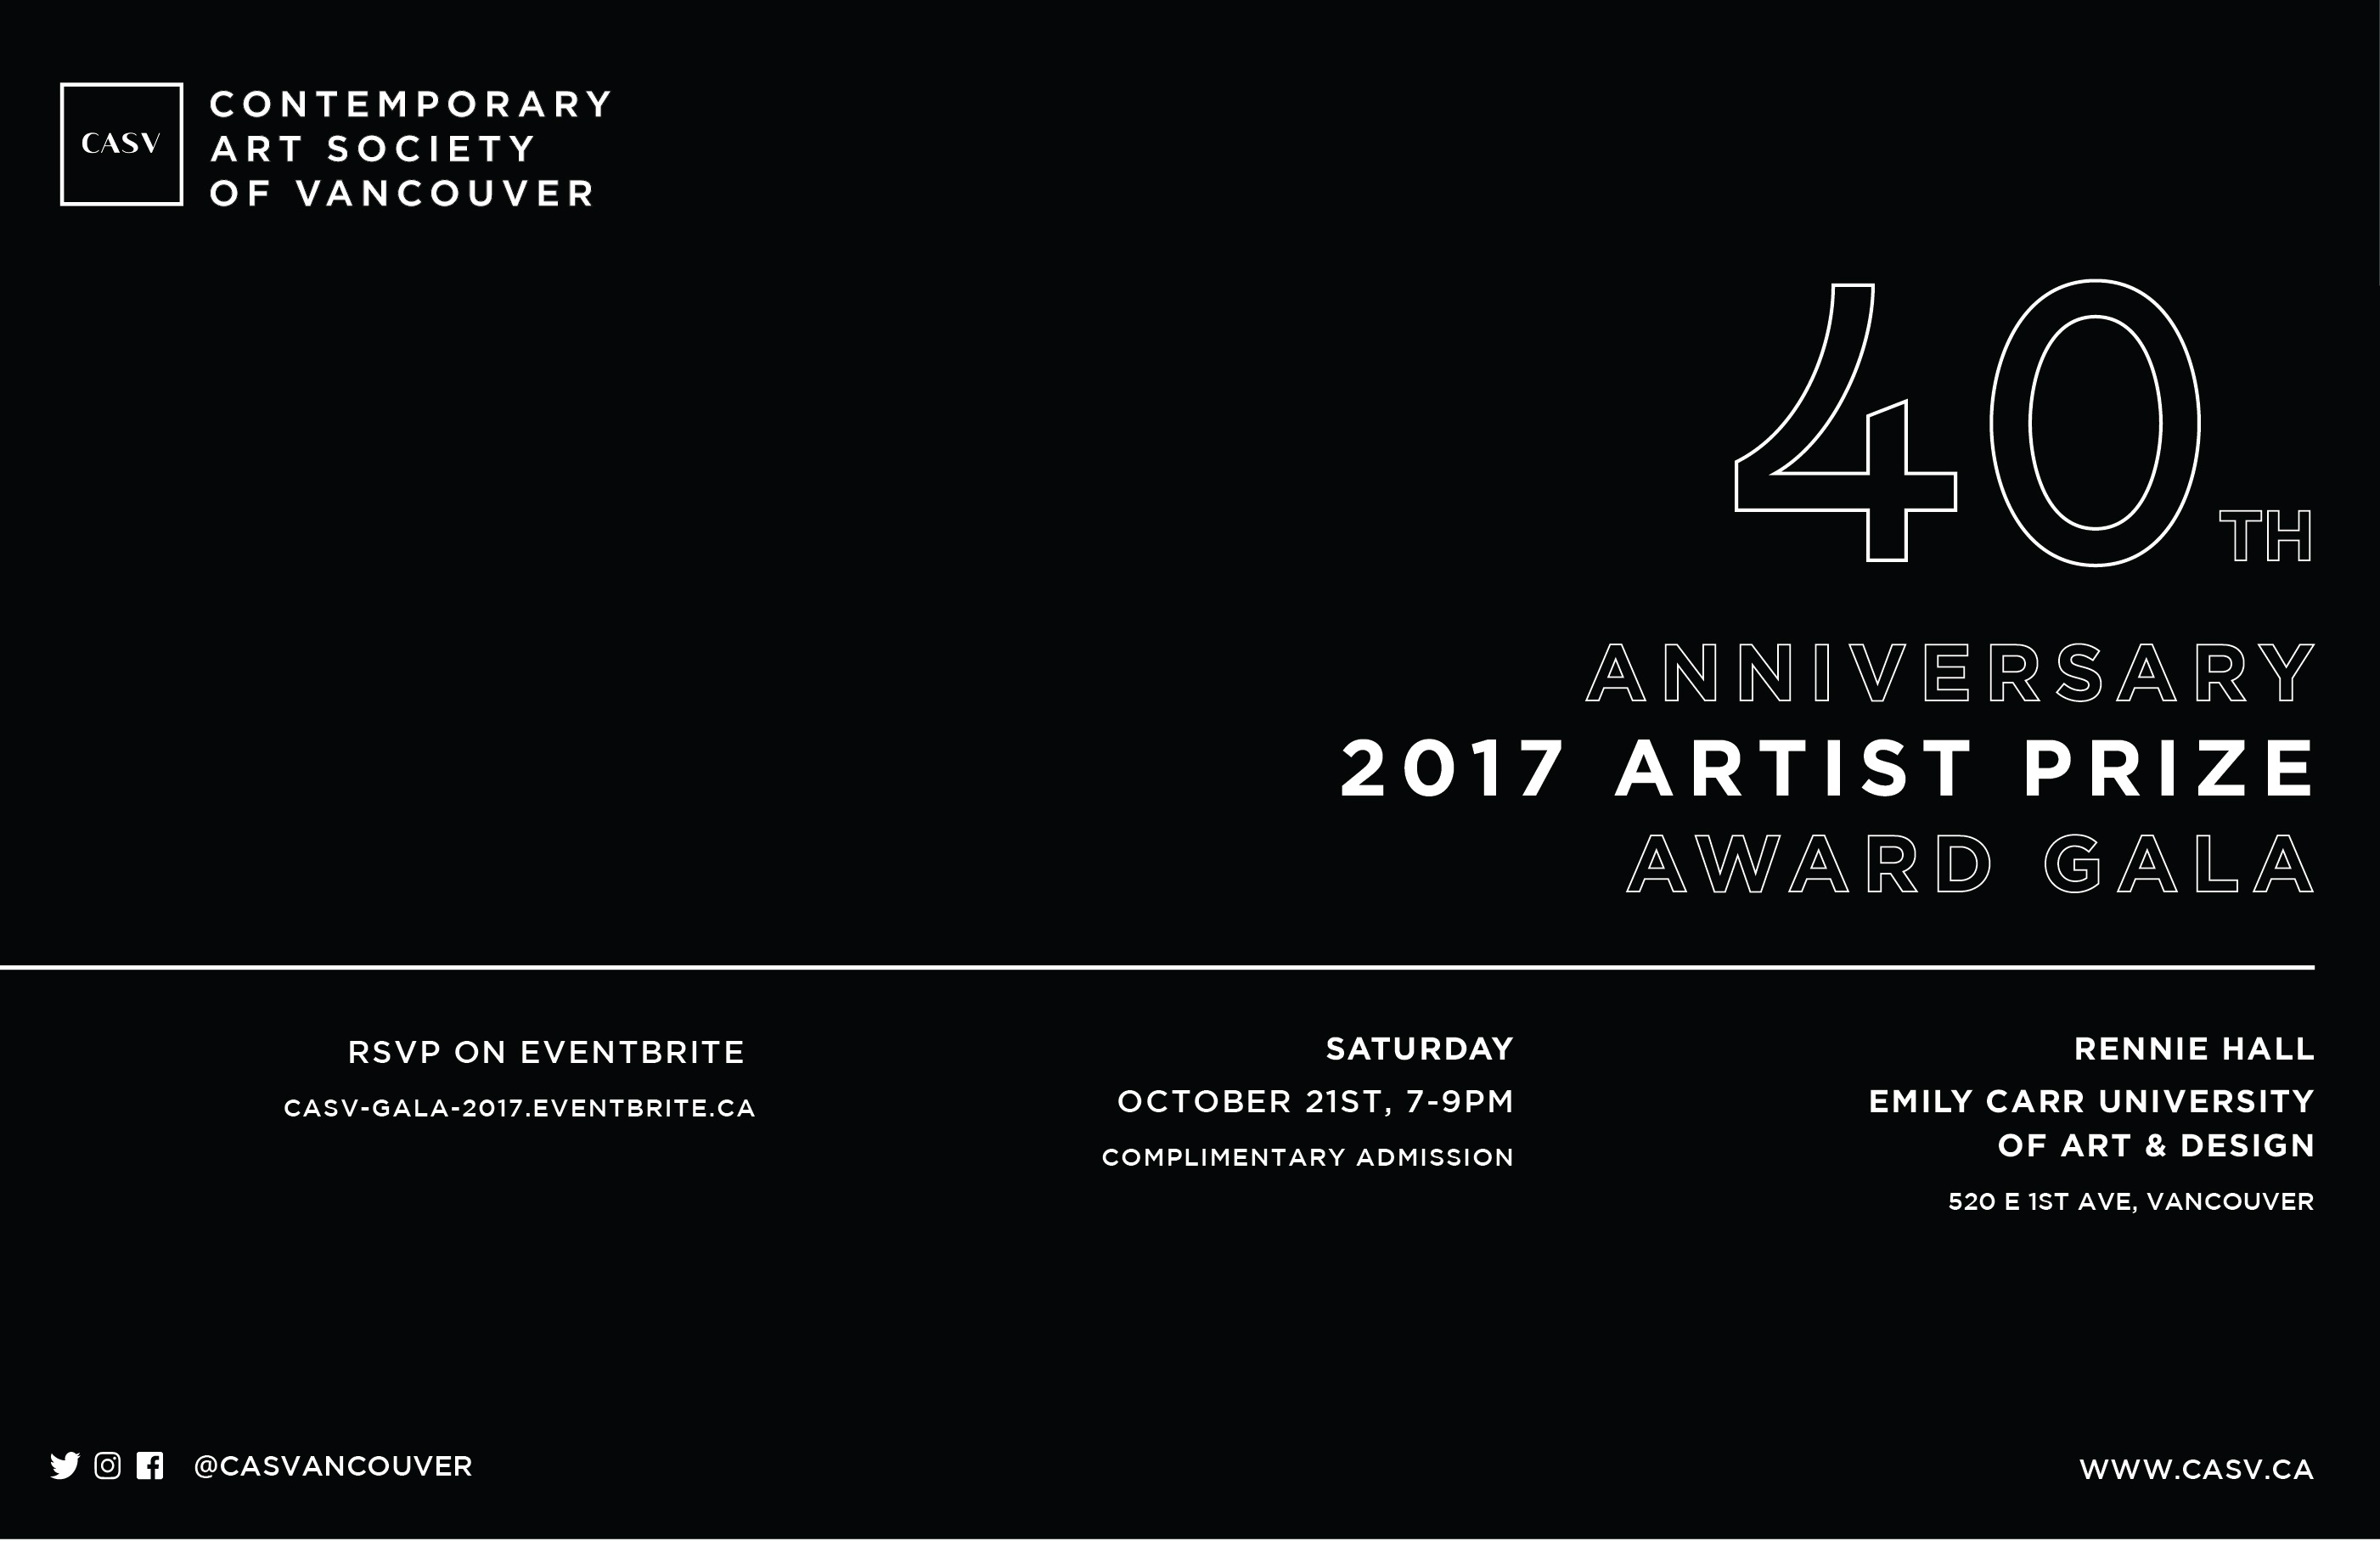 Contemporary Art Society of Vancouver 40th Anniversary Award Gala